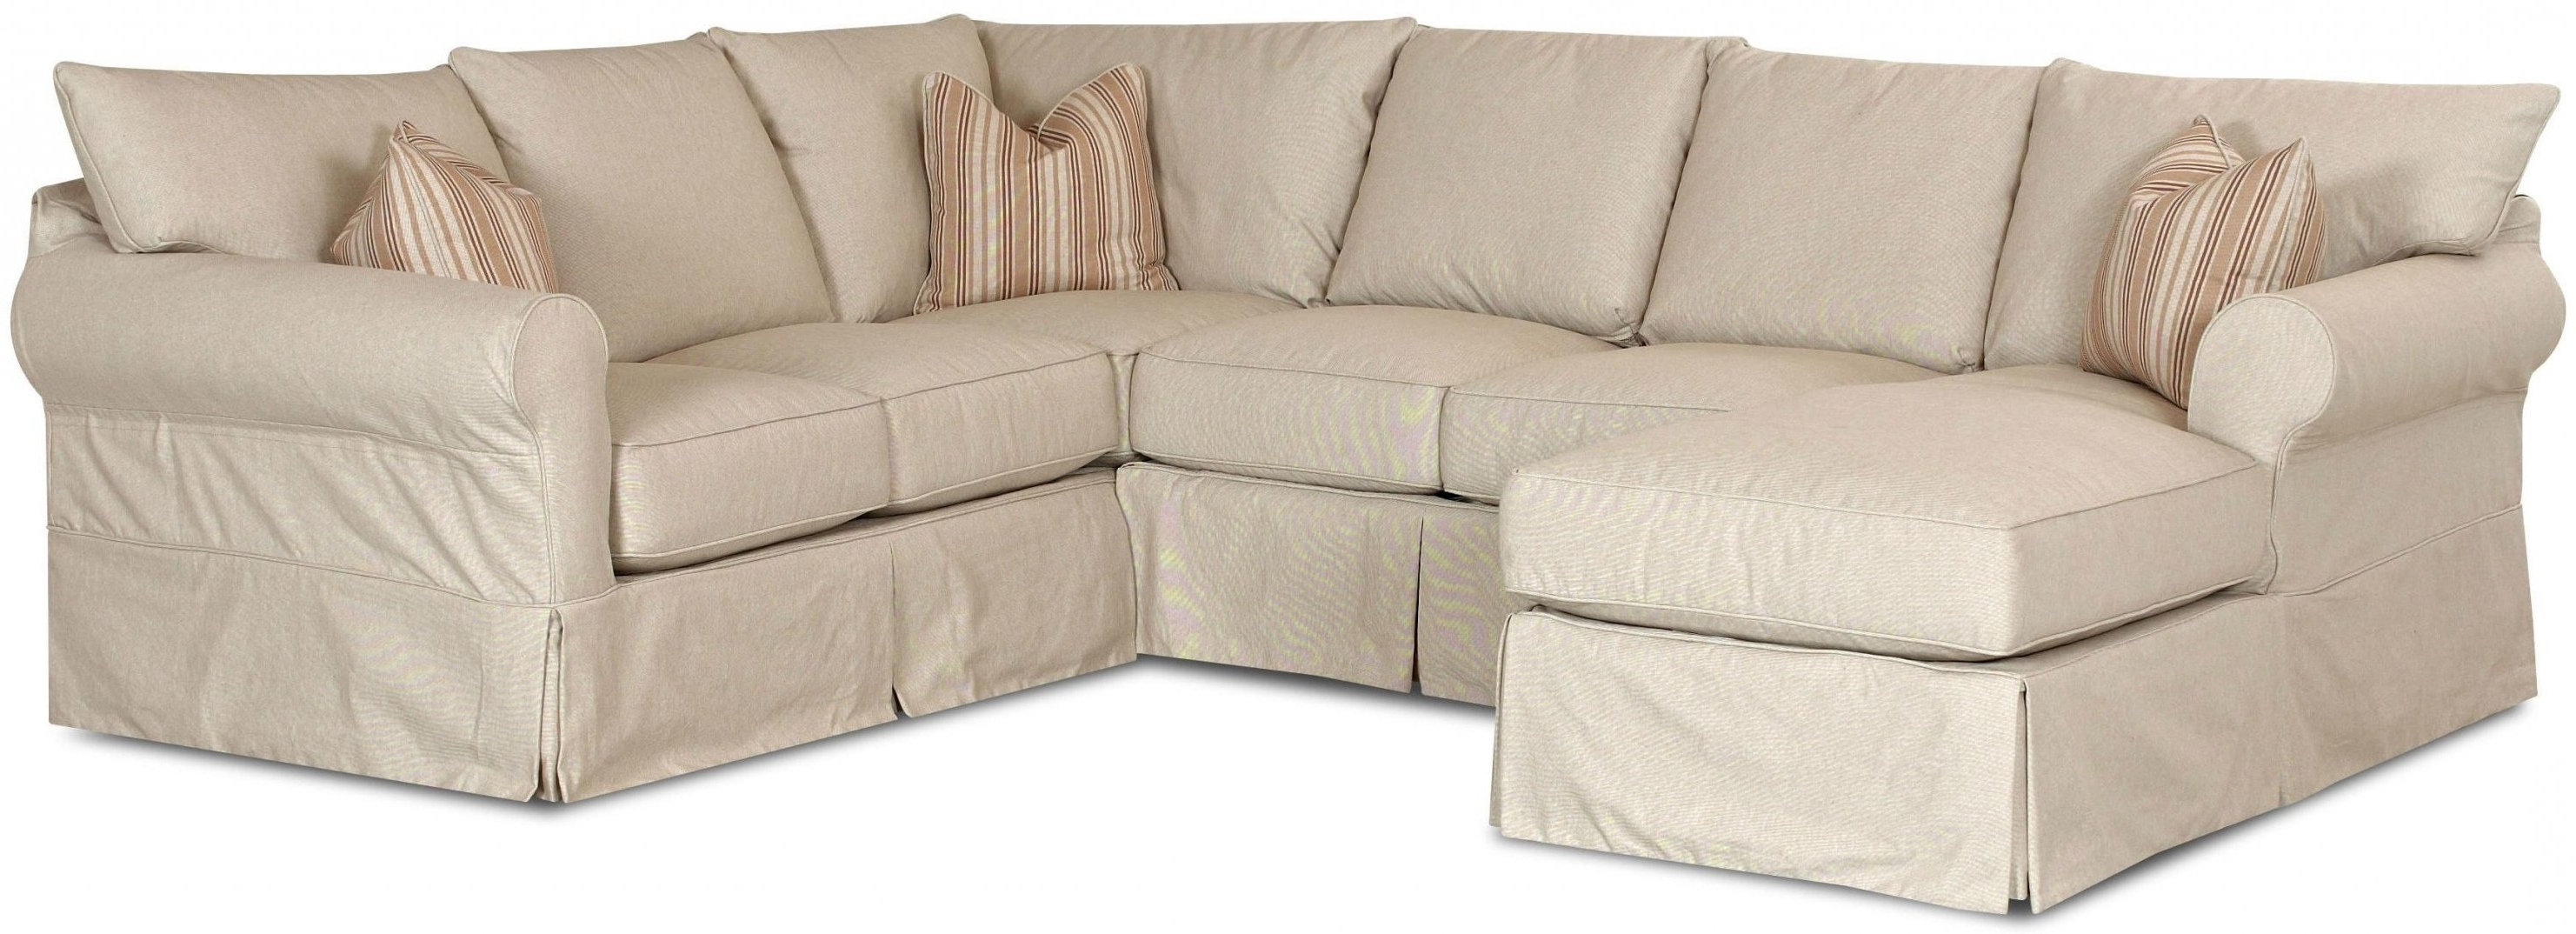 Most Recent Slipcover Sectional Sofas With Chaise Intended For Sectional Sofa Covers Http Ml2R Com Pinterest Chaise Lounge (View 4 of 15)